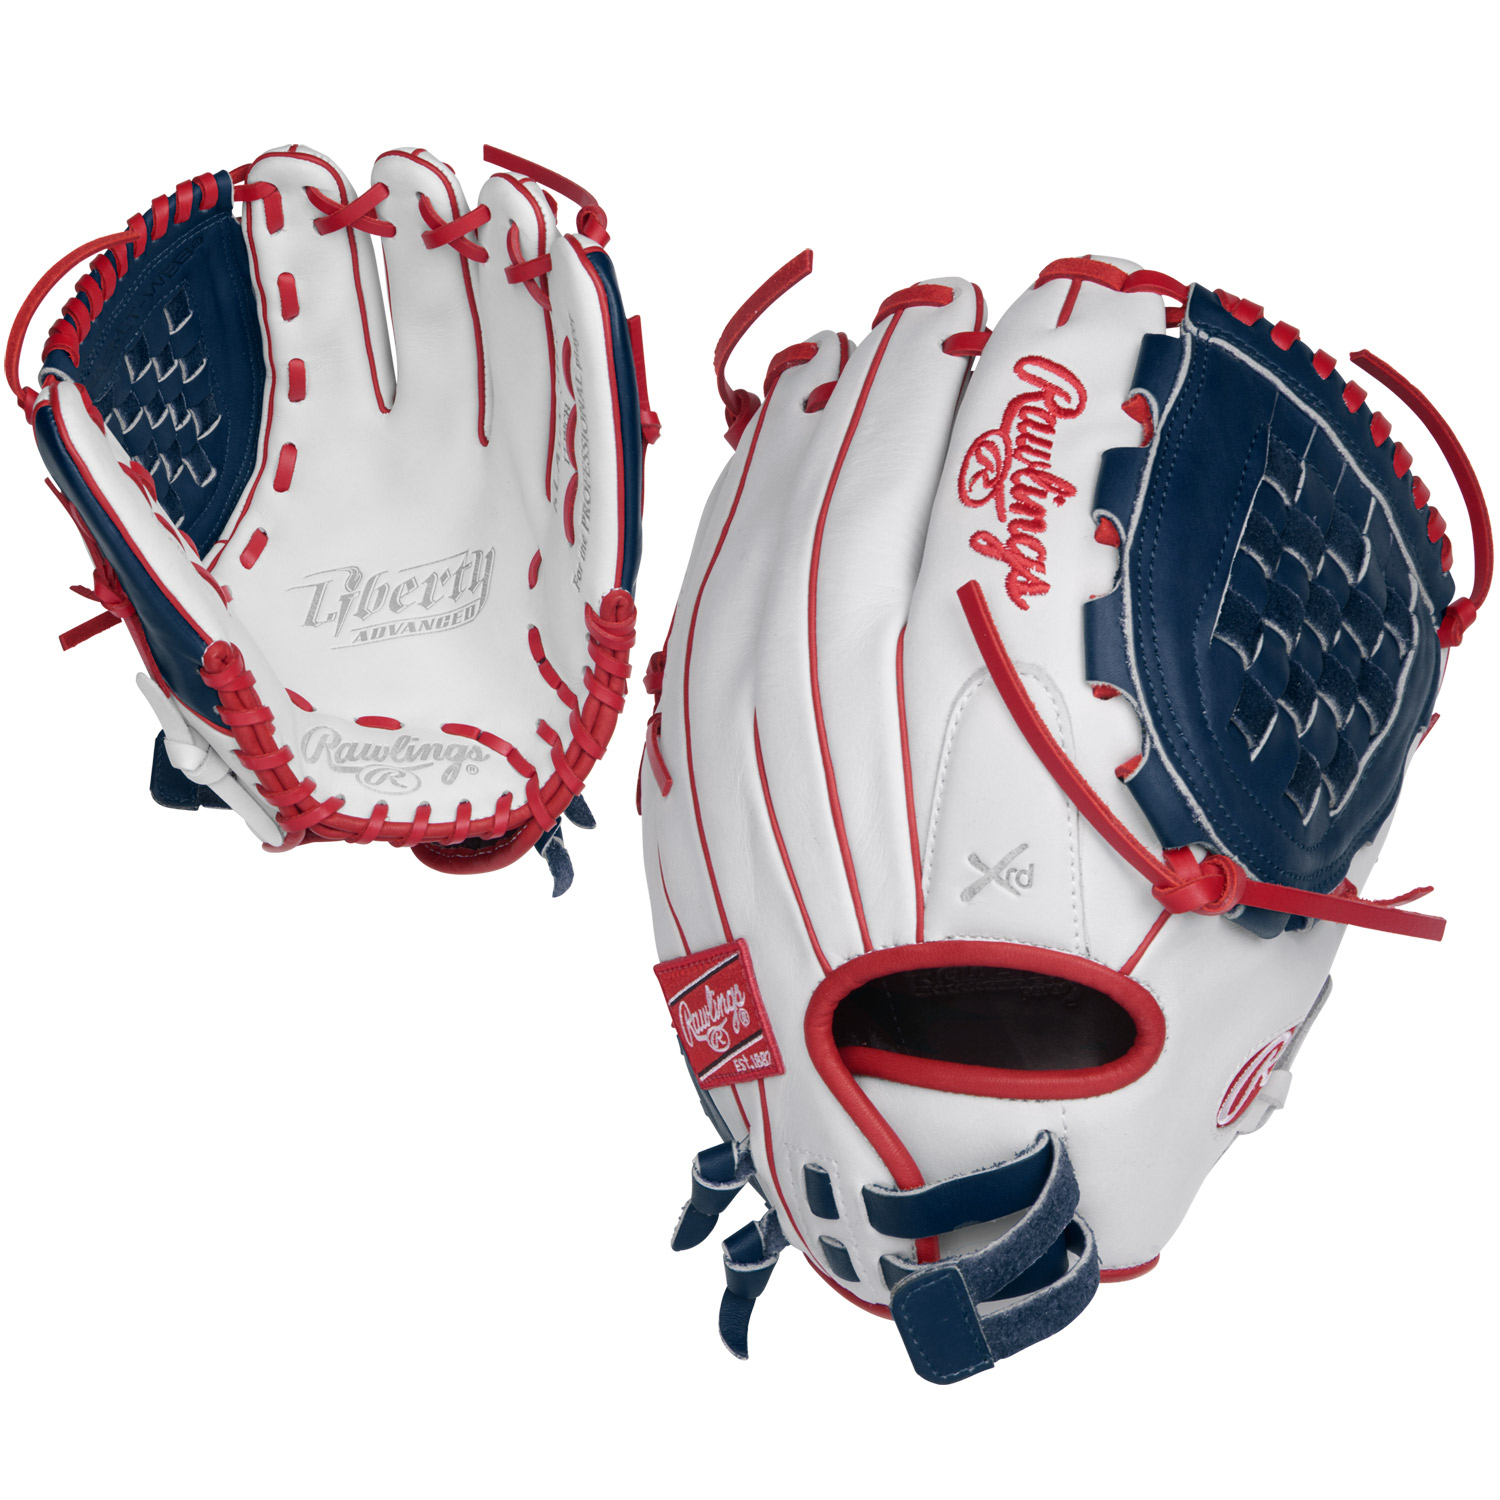 Rawlings Liberty Advanced 12 Inch RLA120-3WNS Fastpitch S...